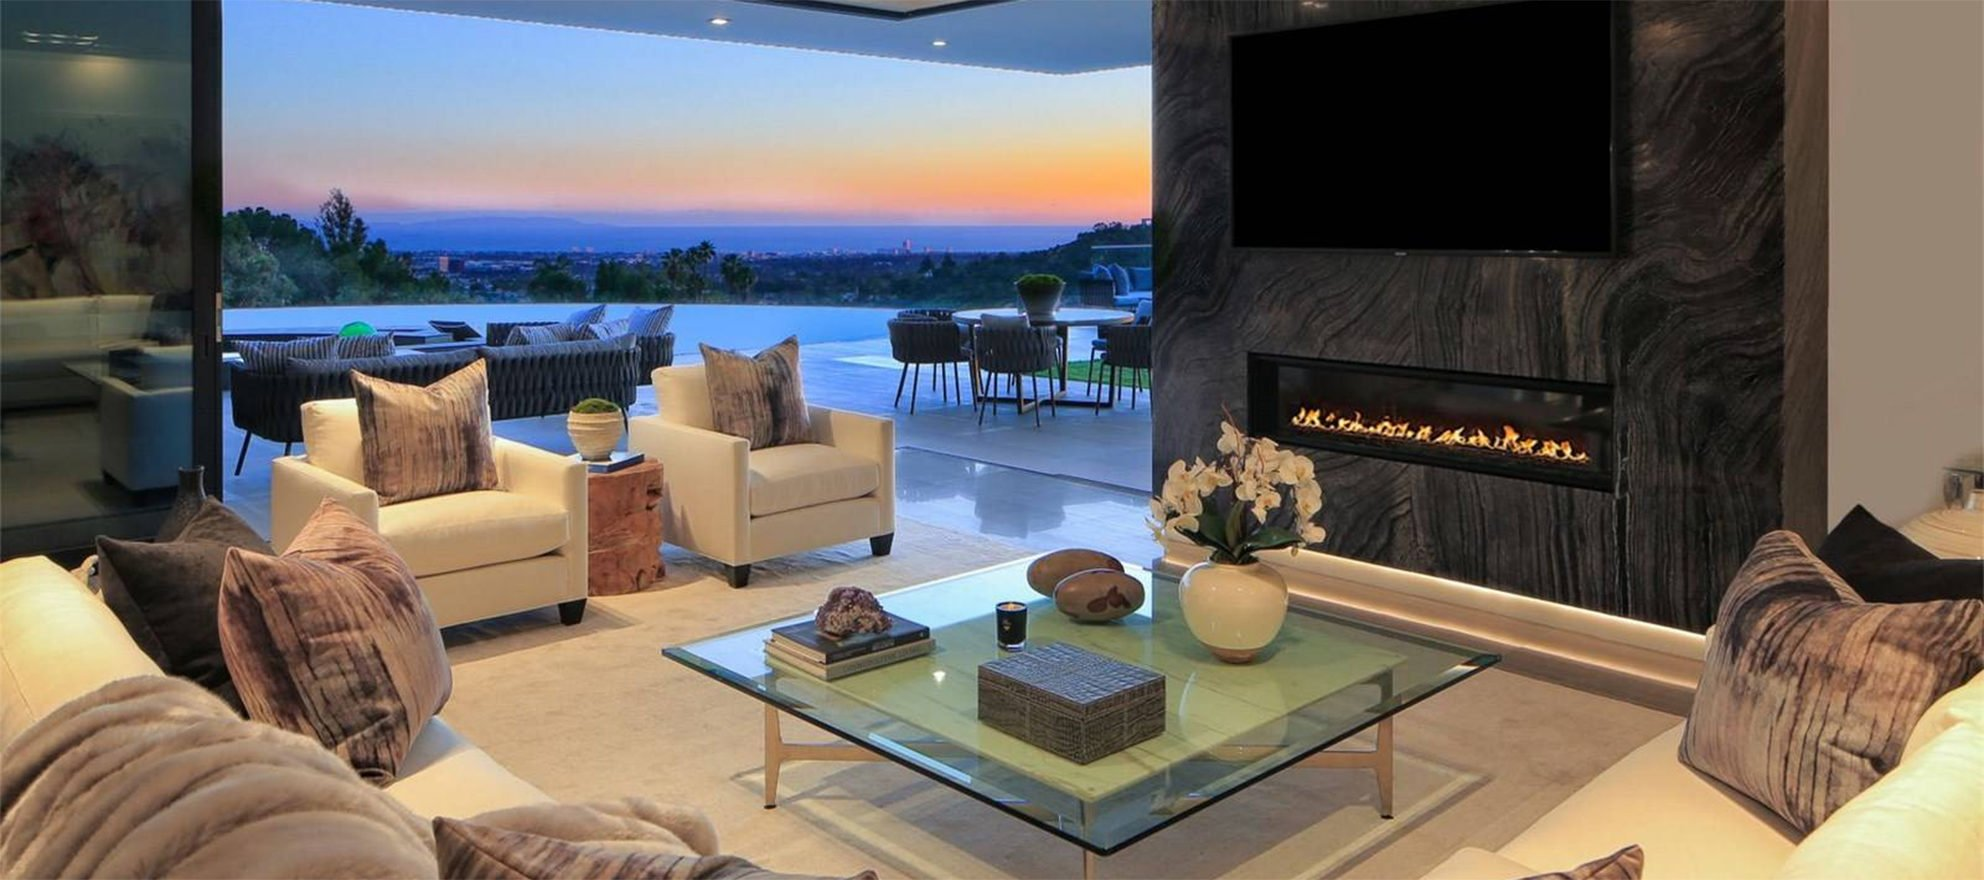 Beyond price: 4 things that matter to luxury buyers